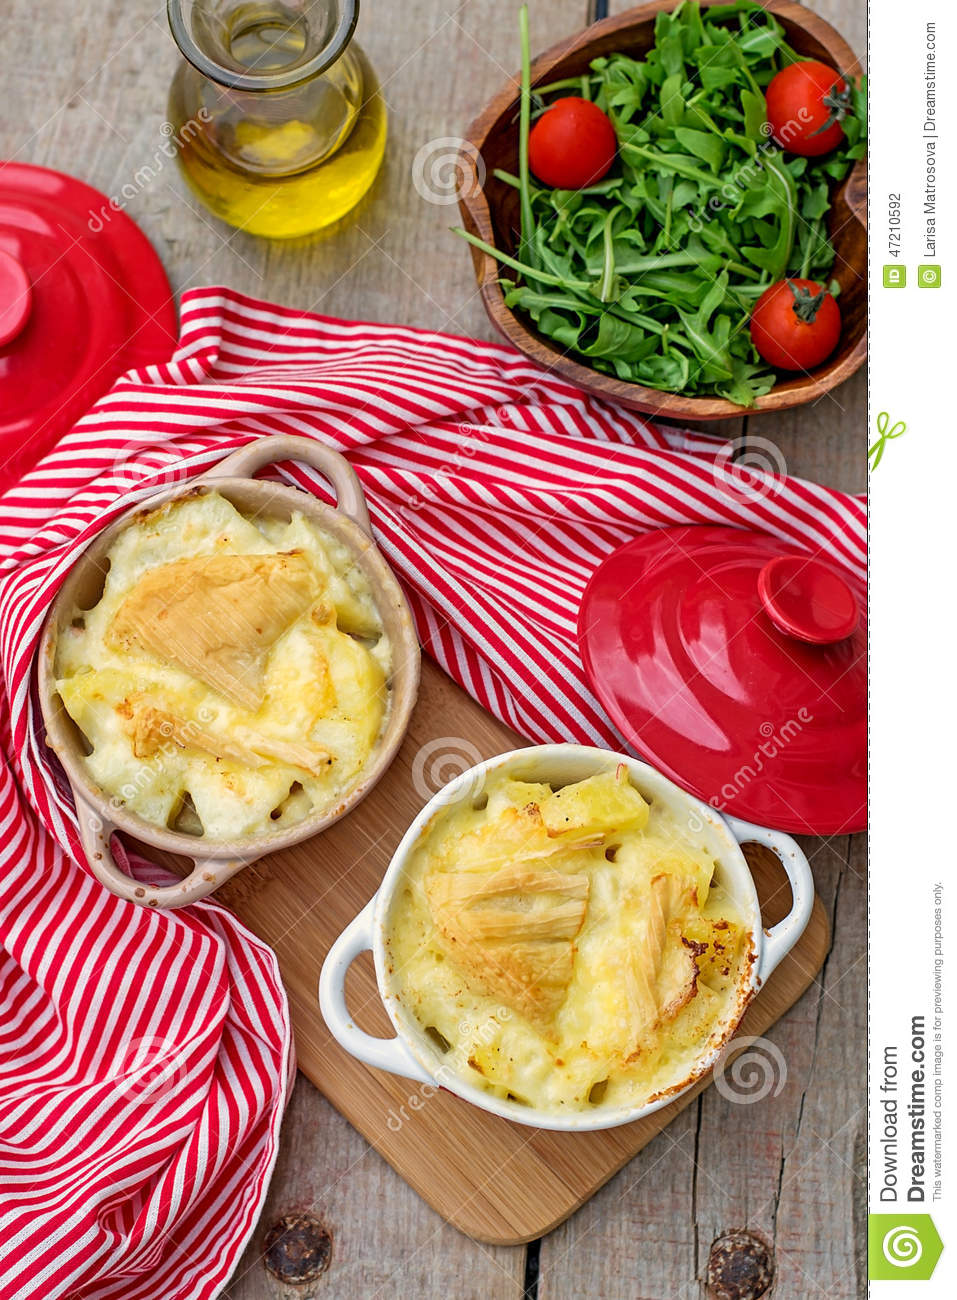 repas traditionnel fran ais tartiflette de pomme de terre photo stock image 47210592. Black Bedroom Furniture Sets. Home Design Ideas